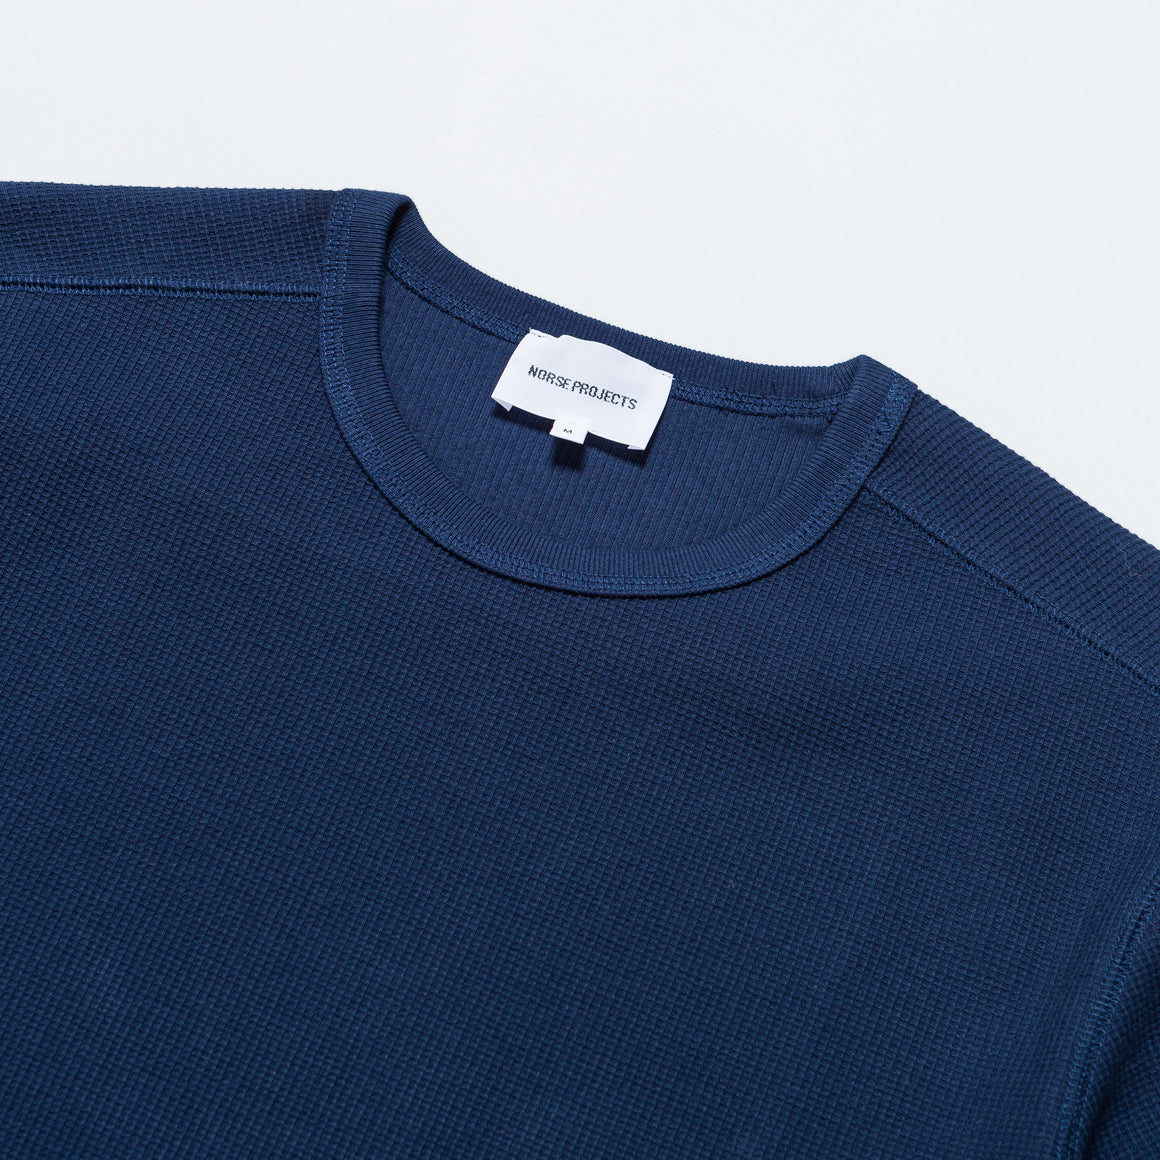 Norse Projects - Johannes Compact Waffle SS - Navy - Up There